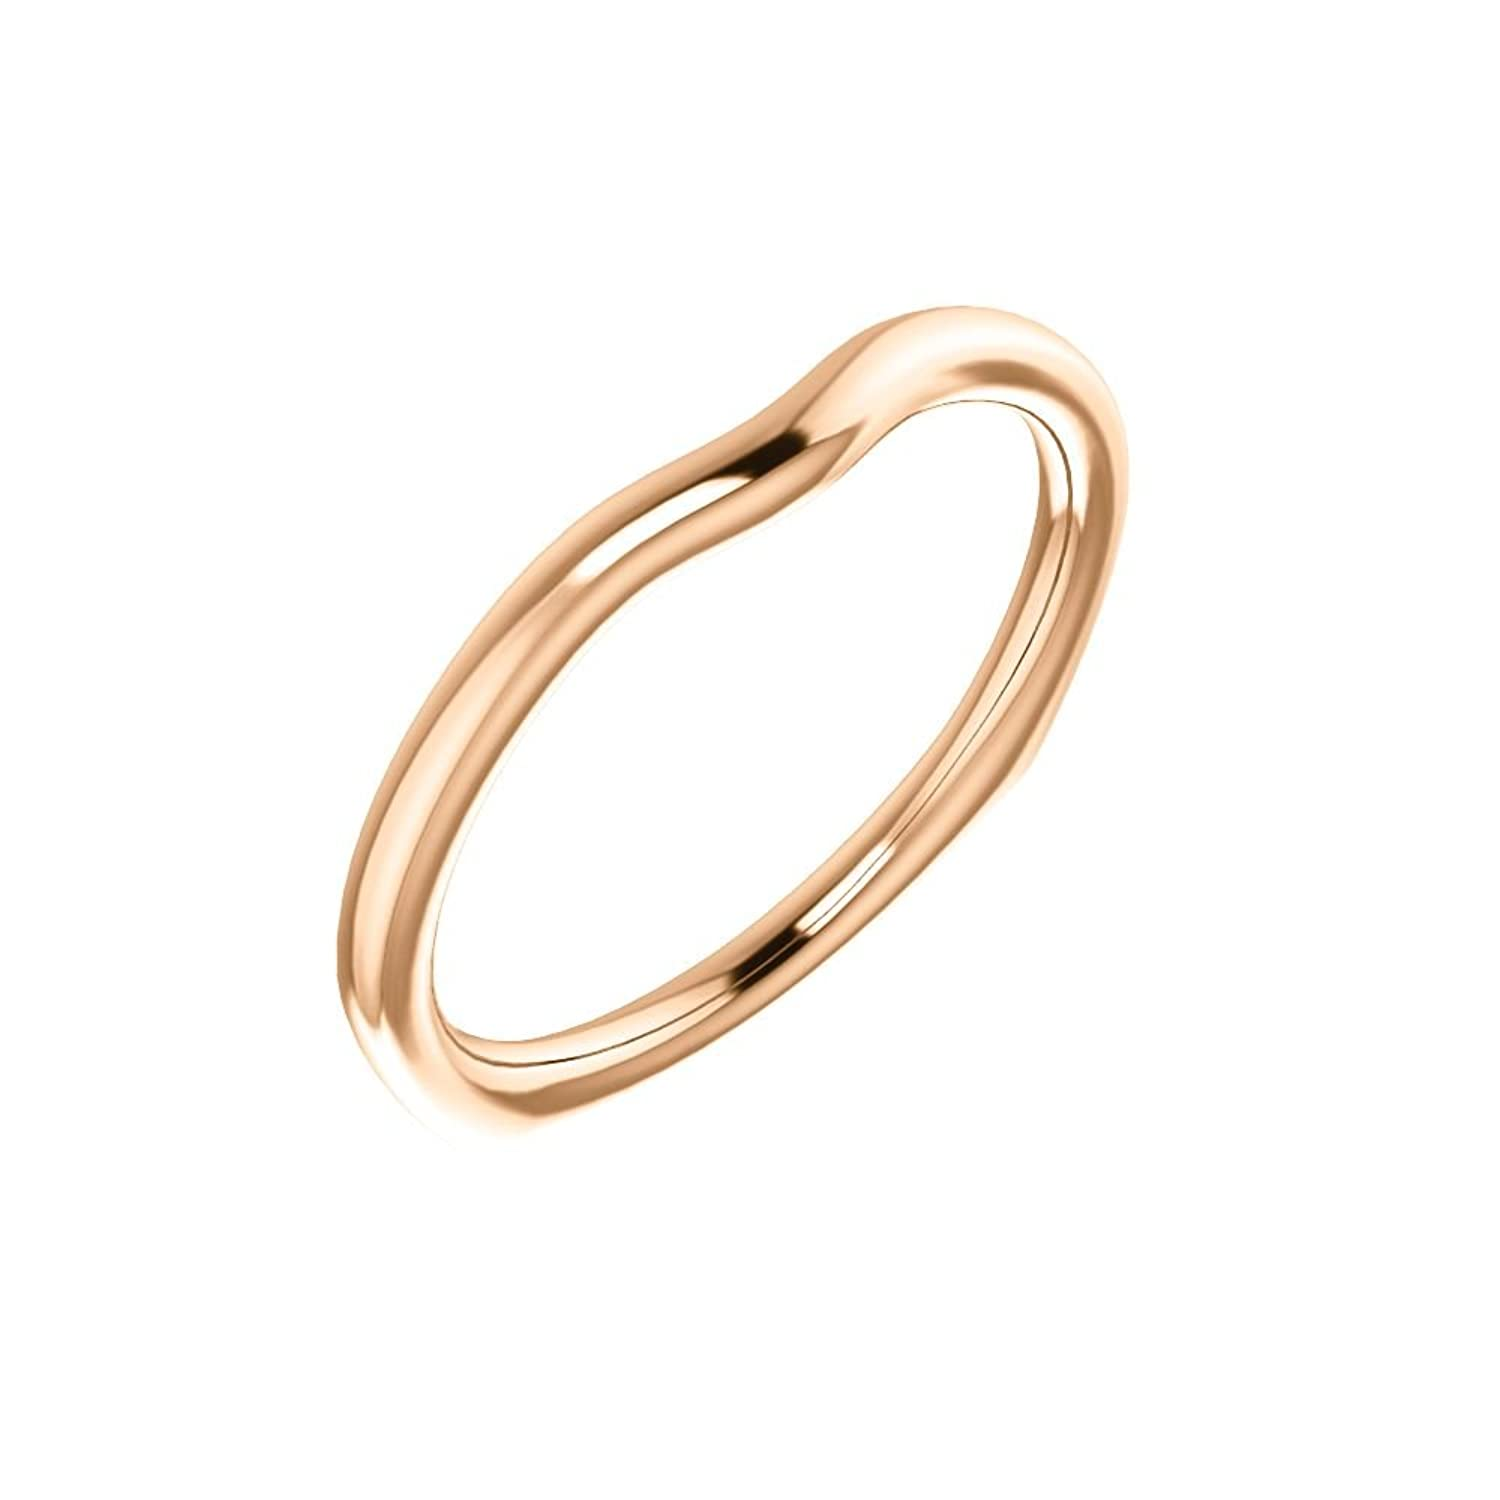 STU001- 18K Rose Band for 5mm Cushion Ring